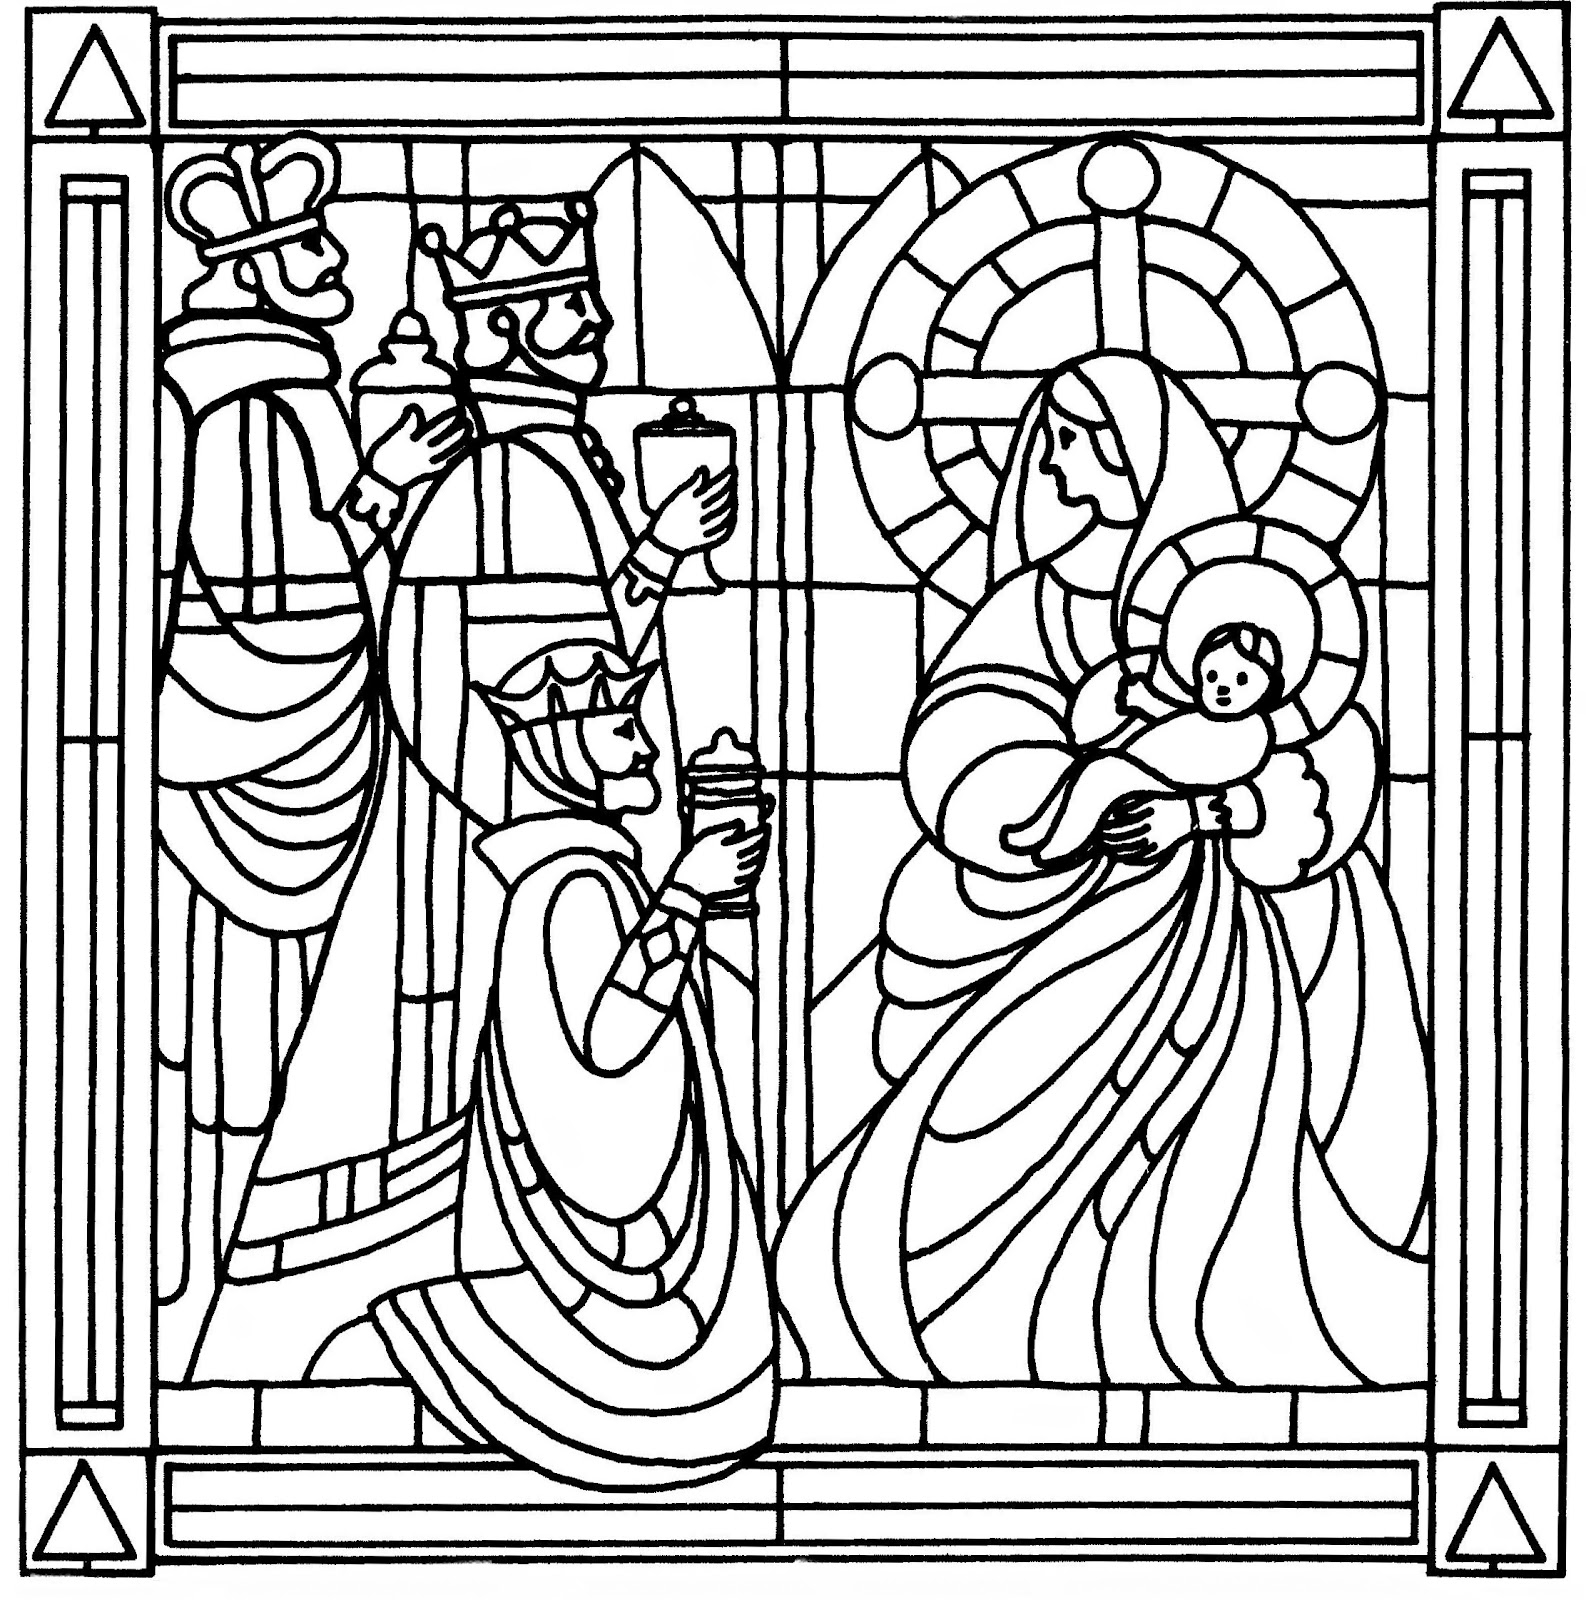 stained glass coloring pages for adults free printable stained glass coloring pages for adults stained glass for pages adults coloring